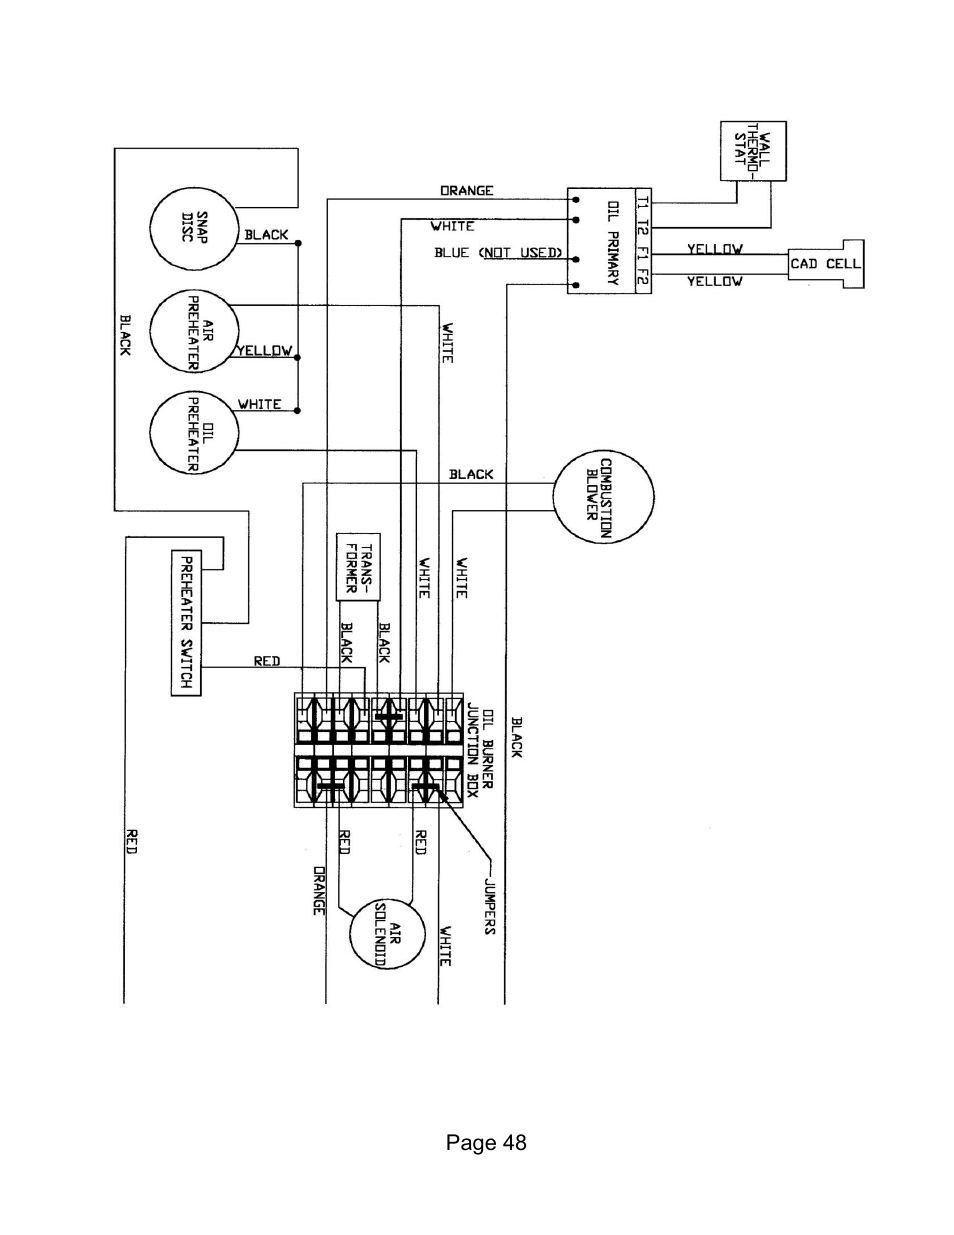 Wiring A Lanair Oil Burner Electrical Work Wiring Diagram - Lanair waste oil heater wiring diagram